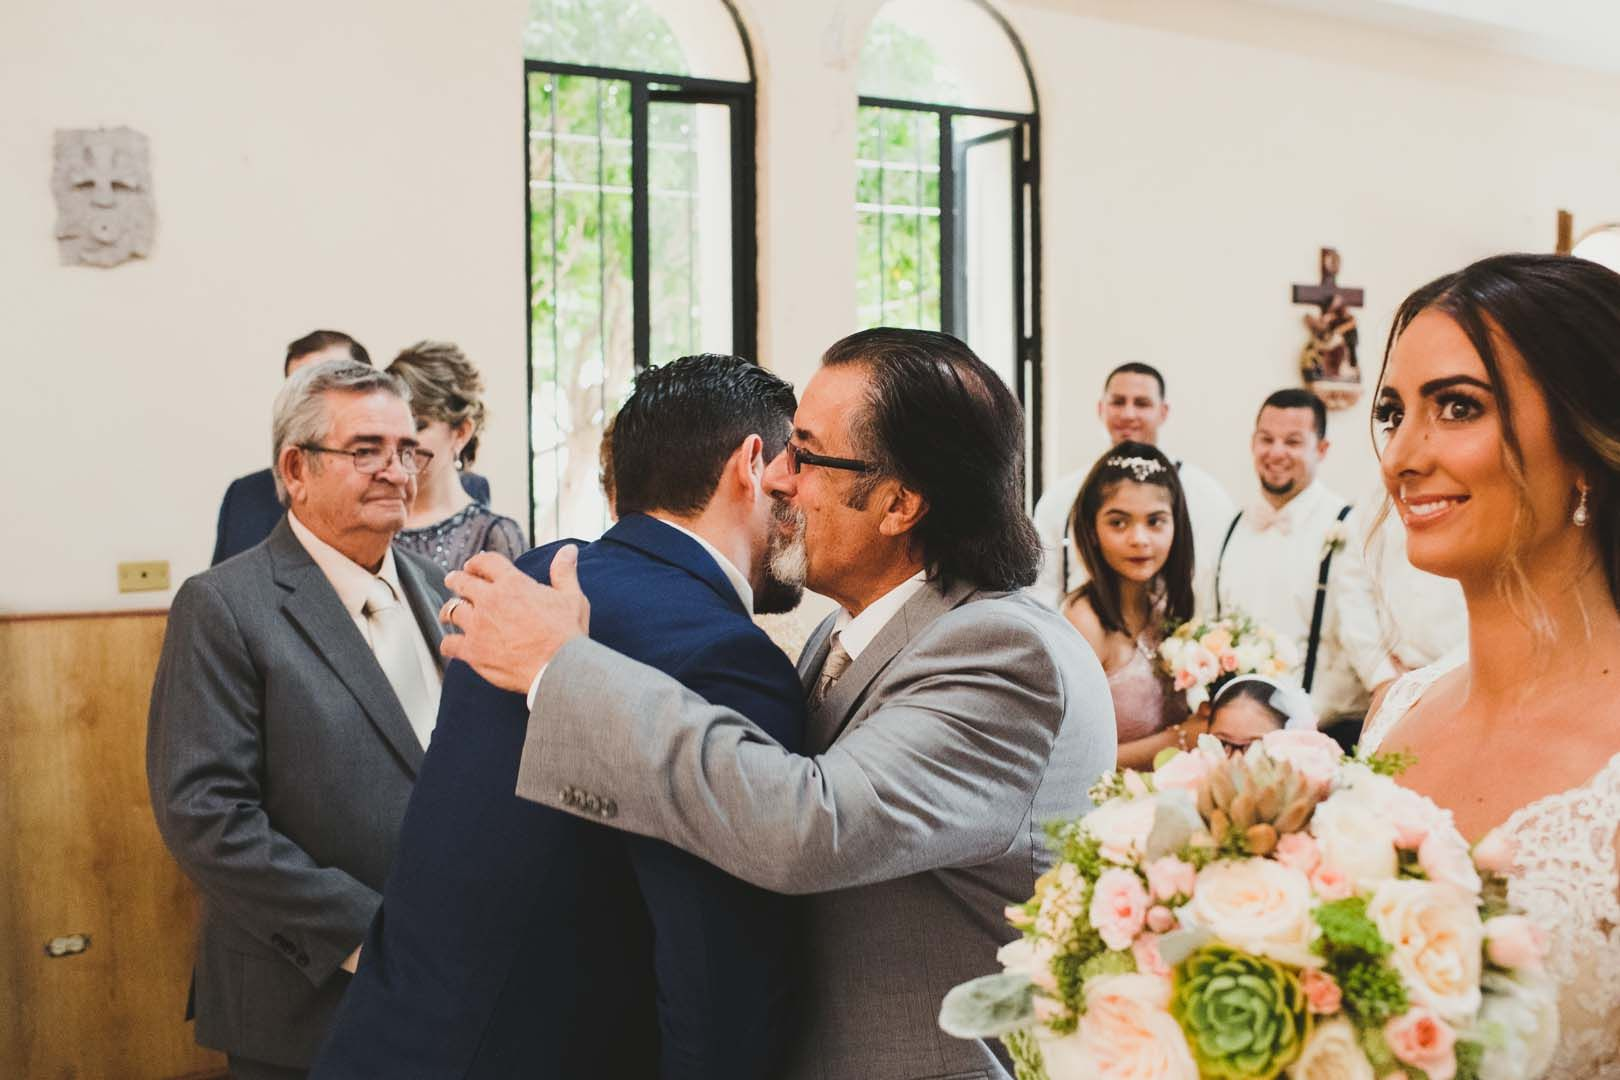 The father of the Bride is hugging the Groom as he hands his daughter off. This wedding was at the Evangelist Church in Los Cabos Mexico.